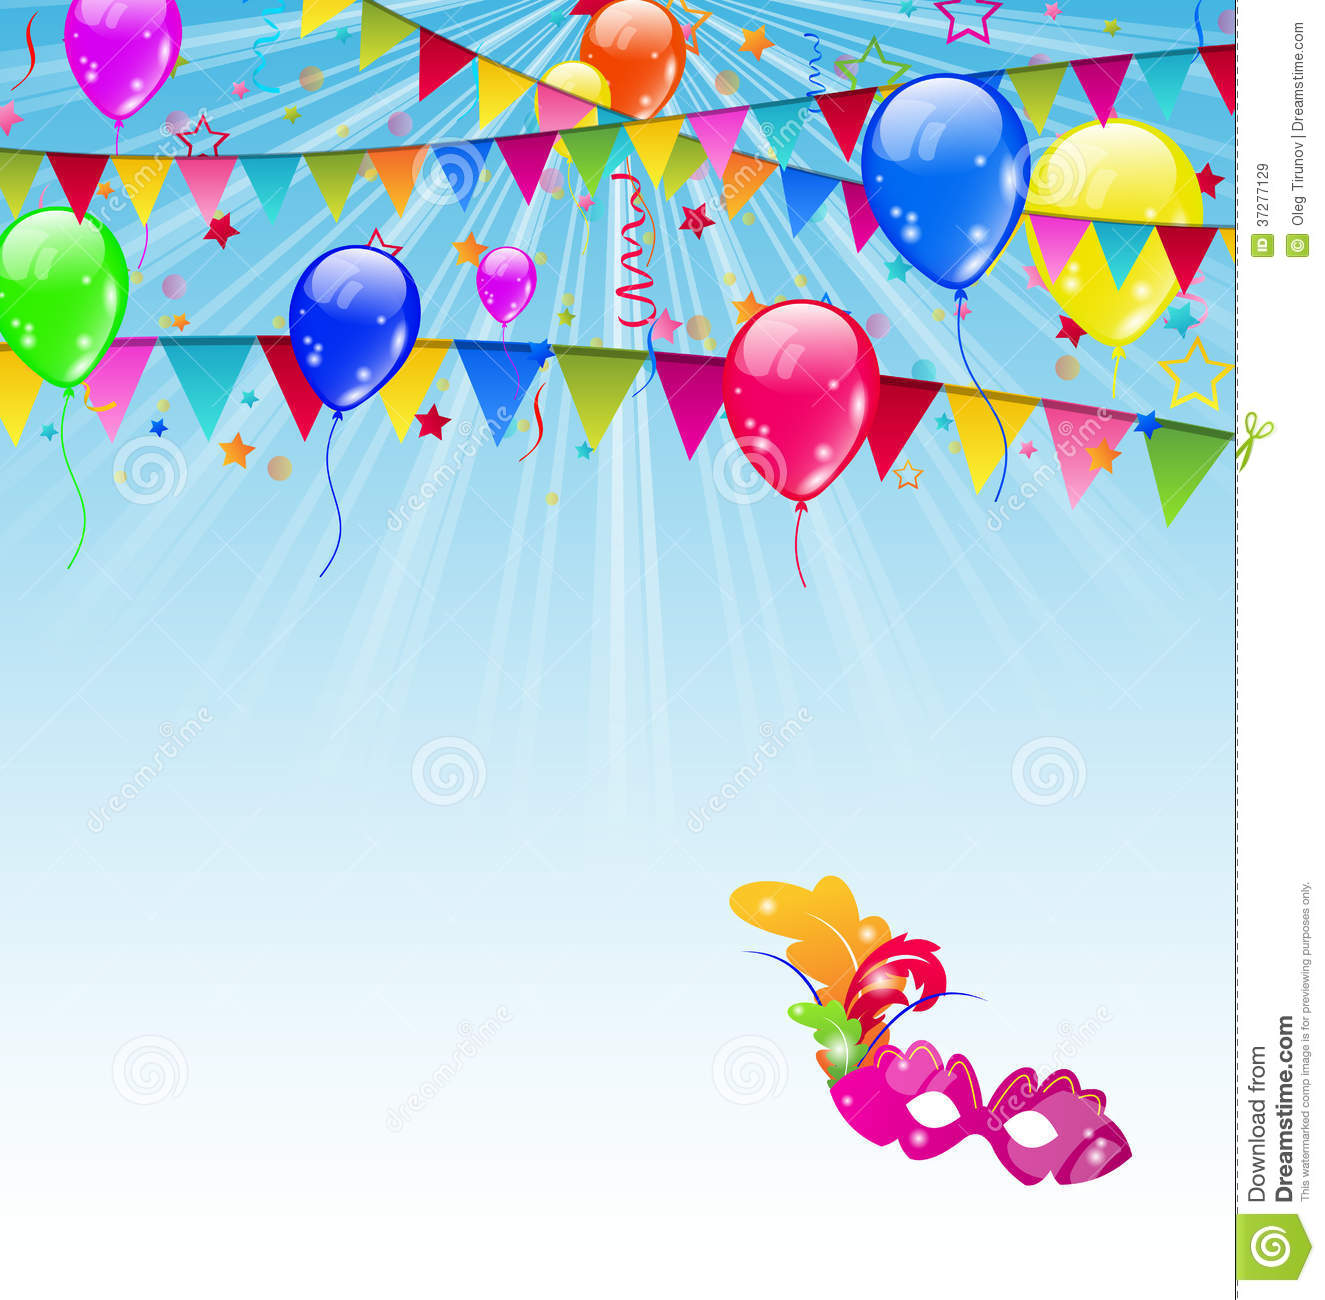 Carnival Background With Flags, Confetti, Balloons Royalty